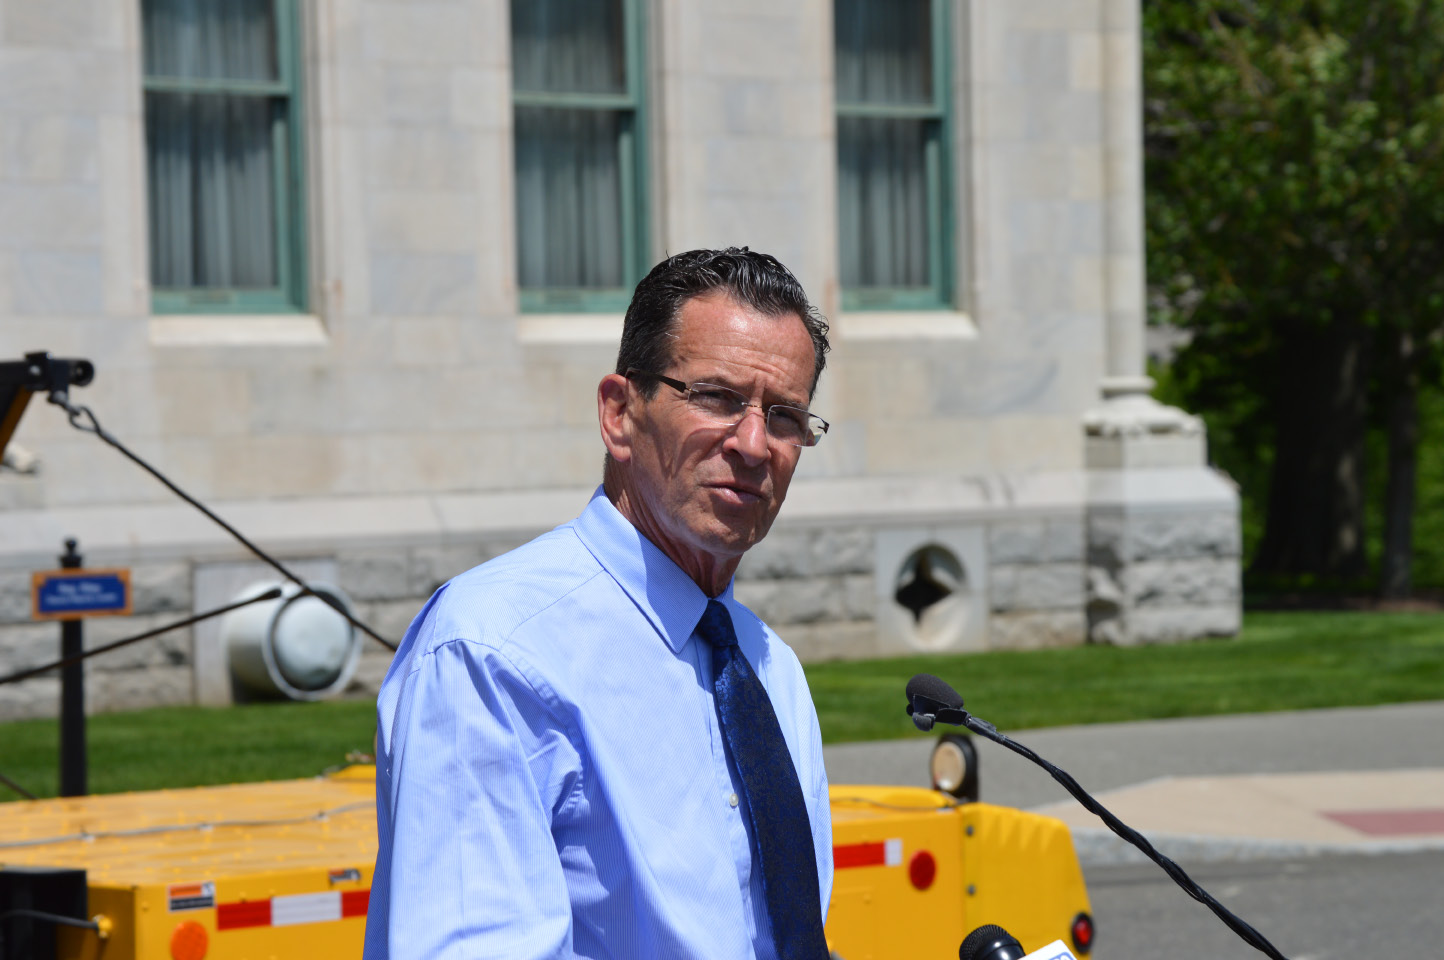 FILE PHOTO -- Gov. Dannel P. Malloy  on Friday, May 19, 2017. | Mike Savino, Record-Journal